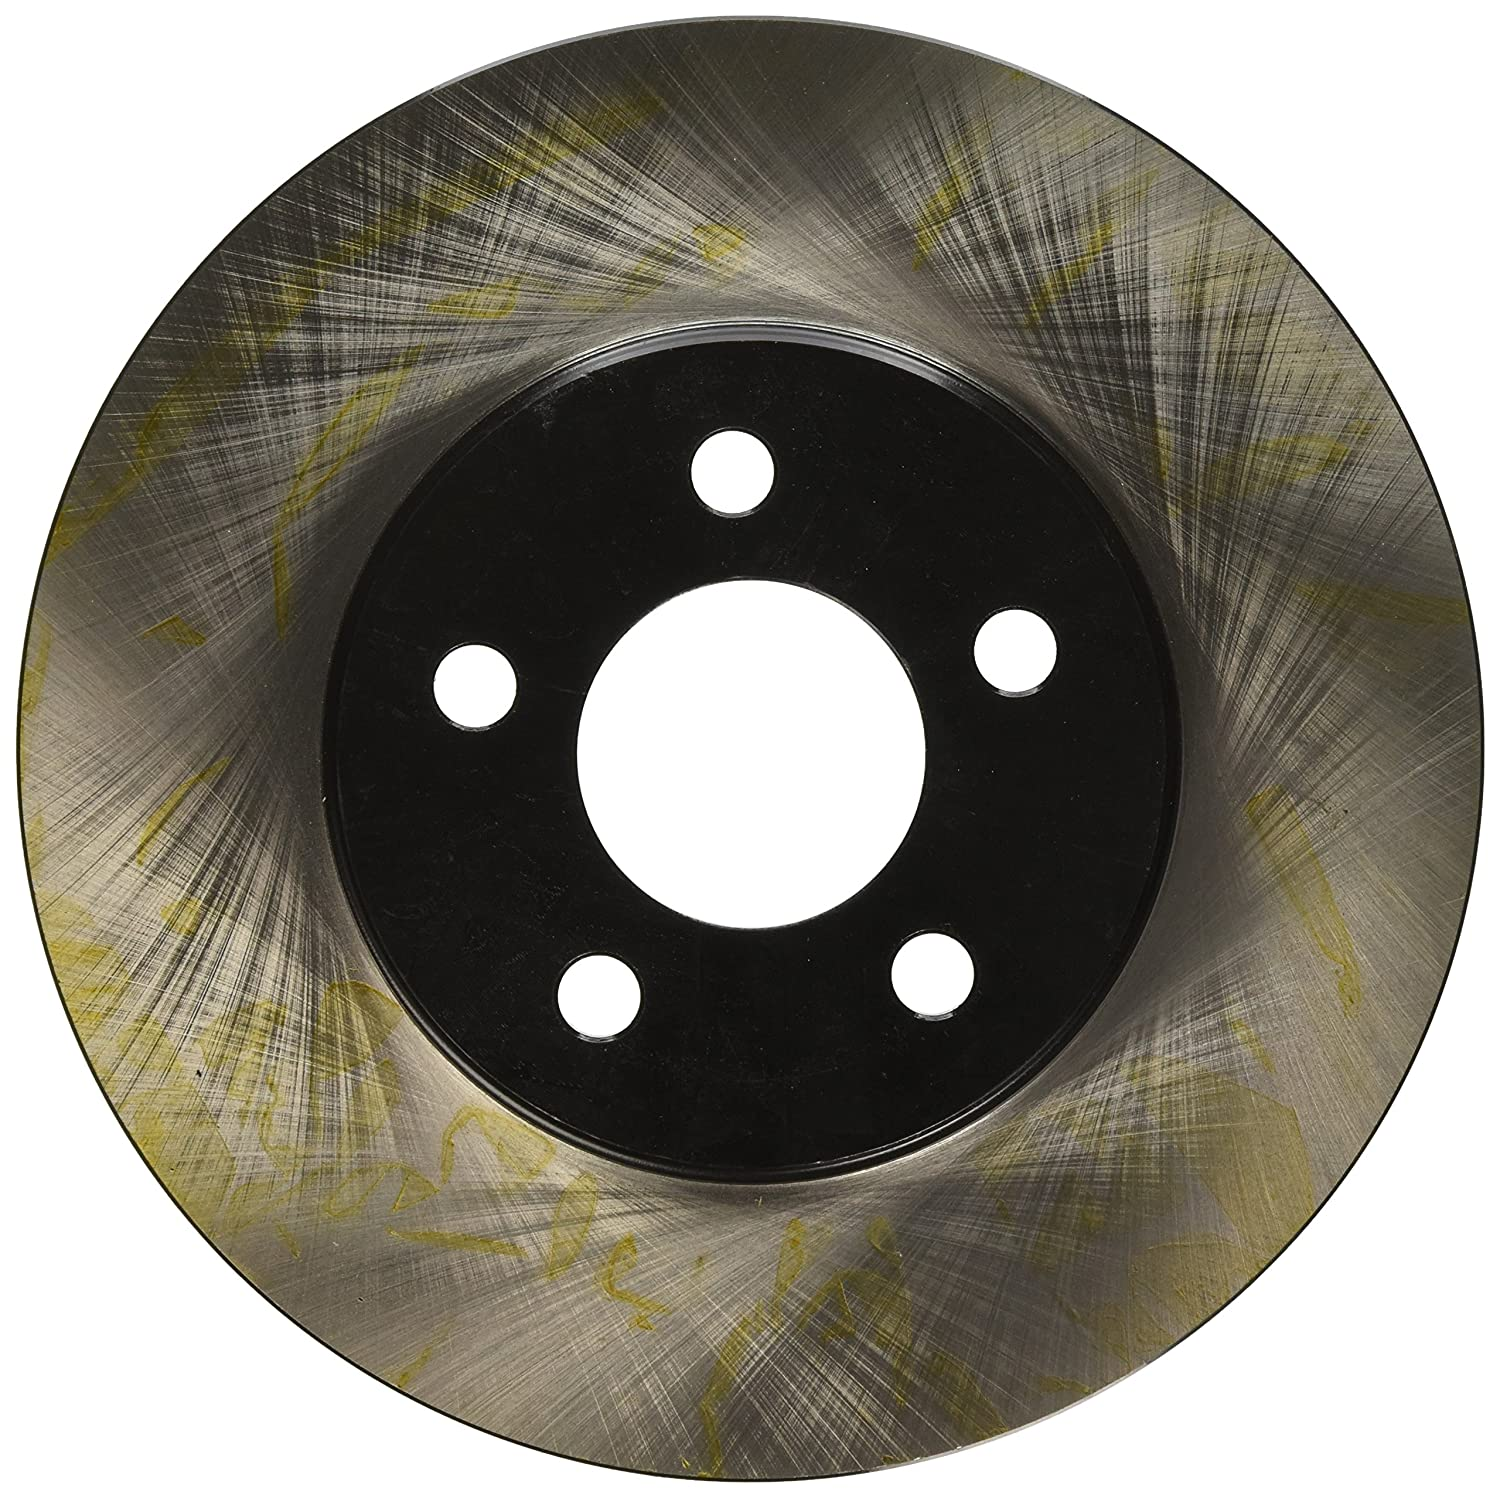 Centric Parts 120.63041 Premium Brake Rotor with E-Coating CE12063041.1896